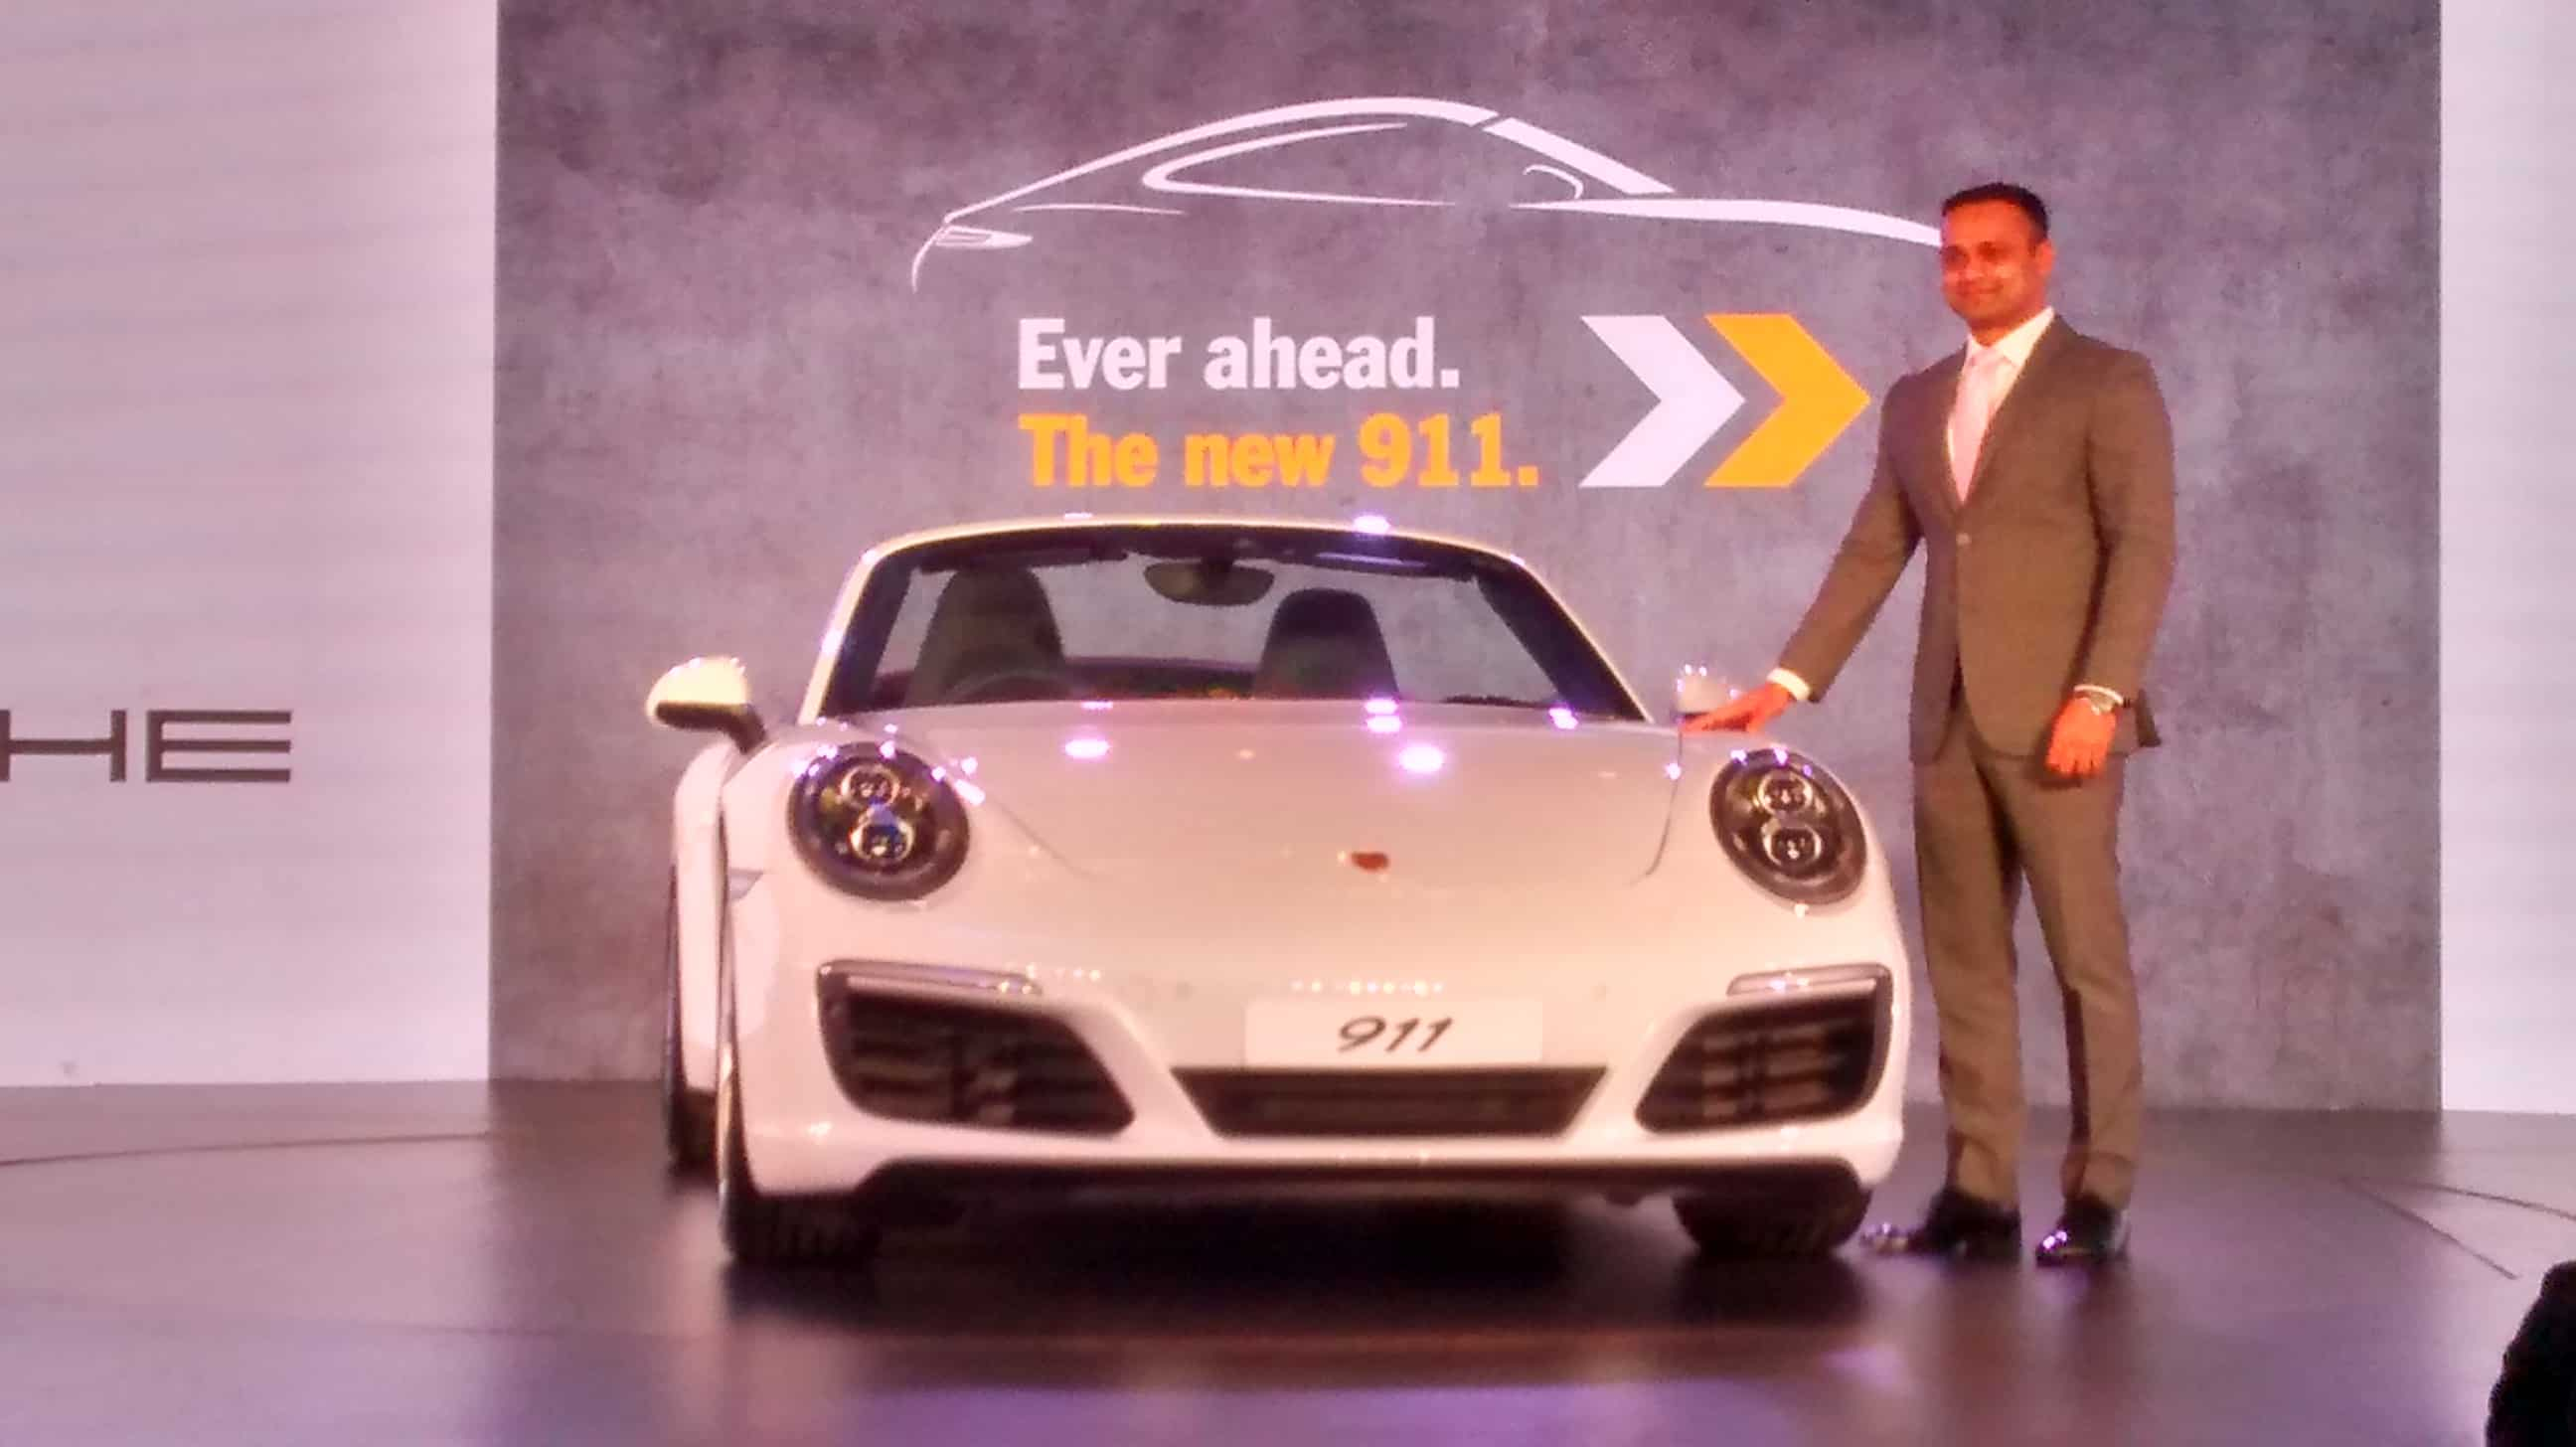 Pavan Shetty, Director of Porsche India